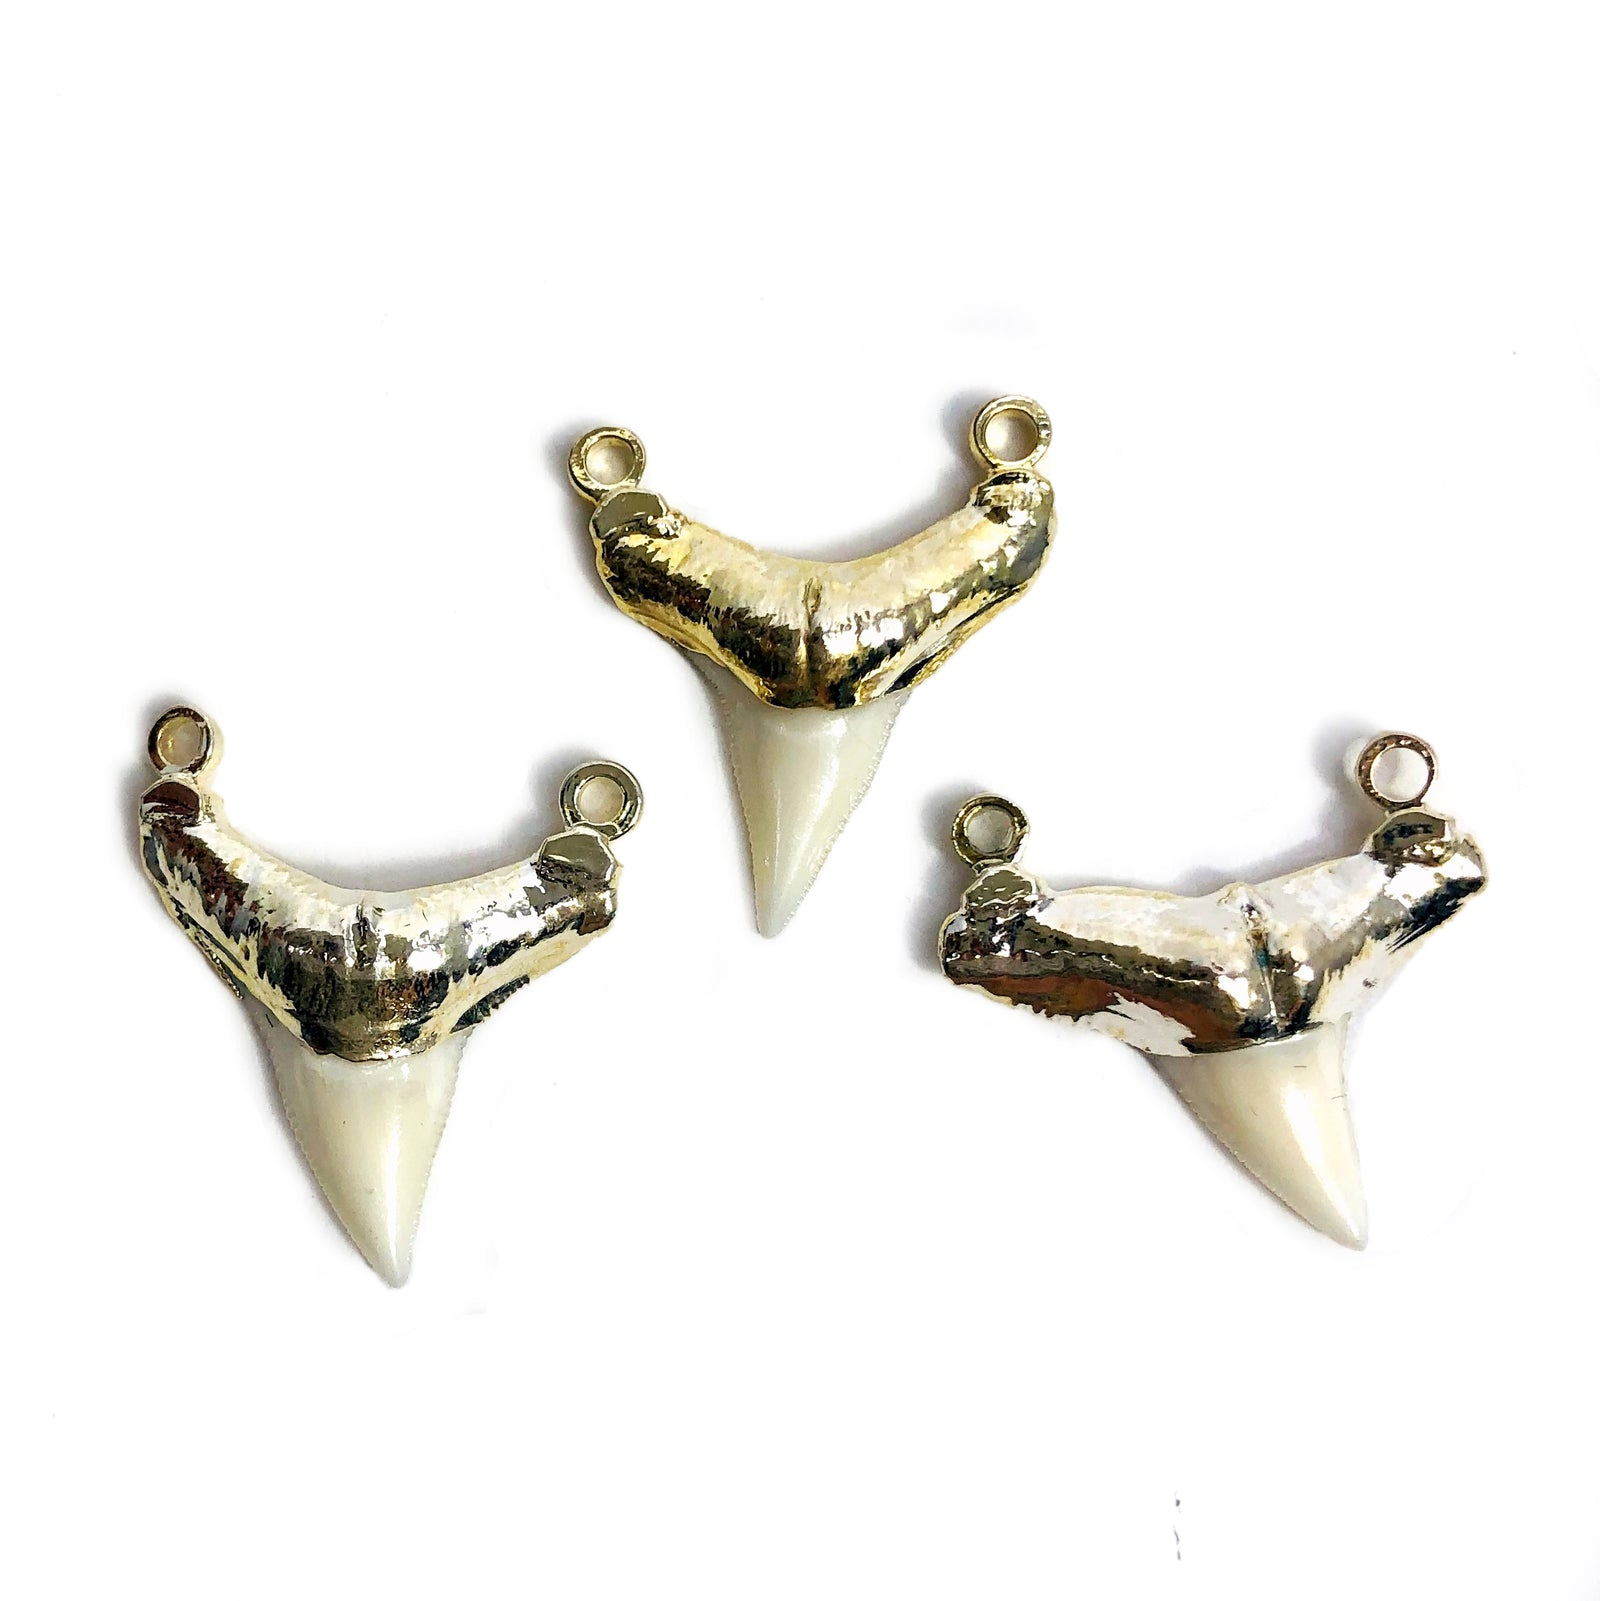 Shark Tooth Pendant Double Bail Silver Plated (S35B21-13)